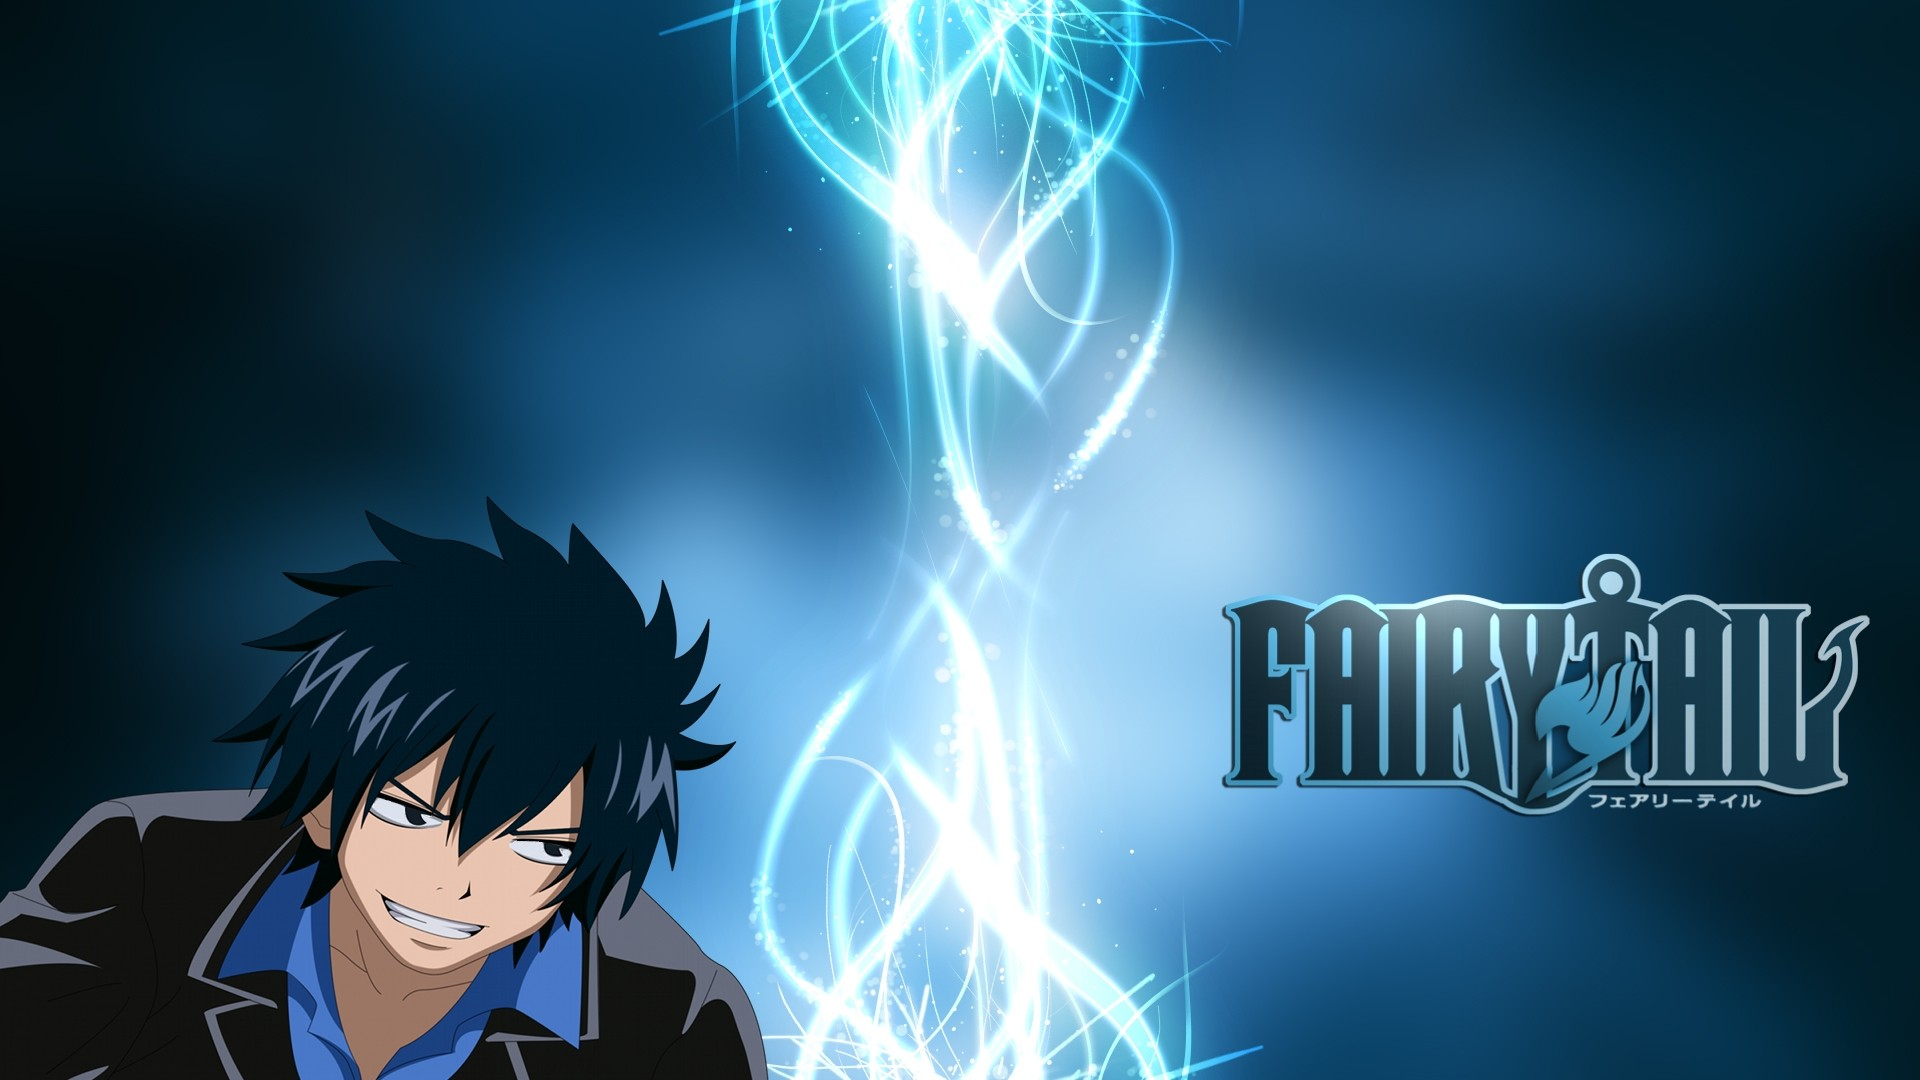 1920x1080 View all Fairy Tail Wallpapers. Report this Image? favorite enlarge^   1077343 MB Download Original Gray Fullbuster